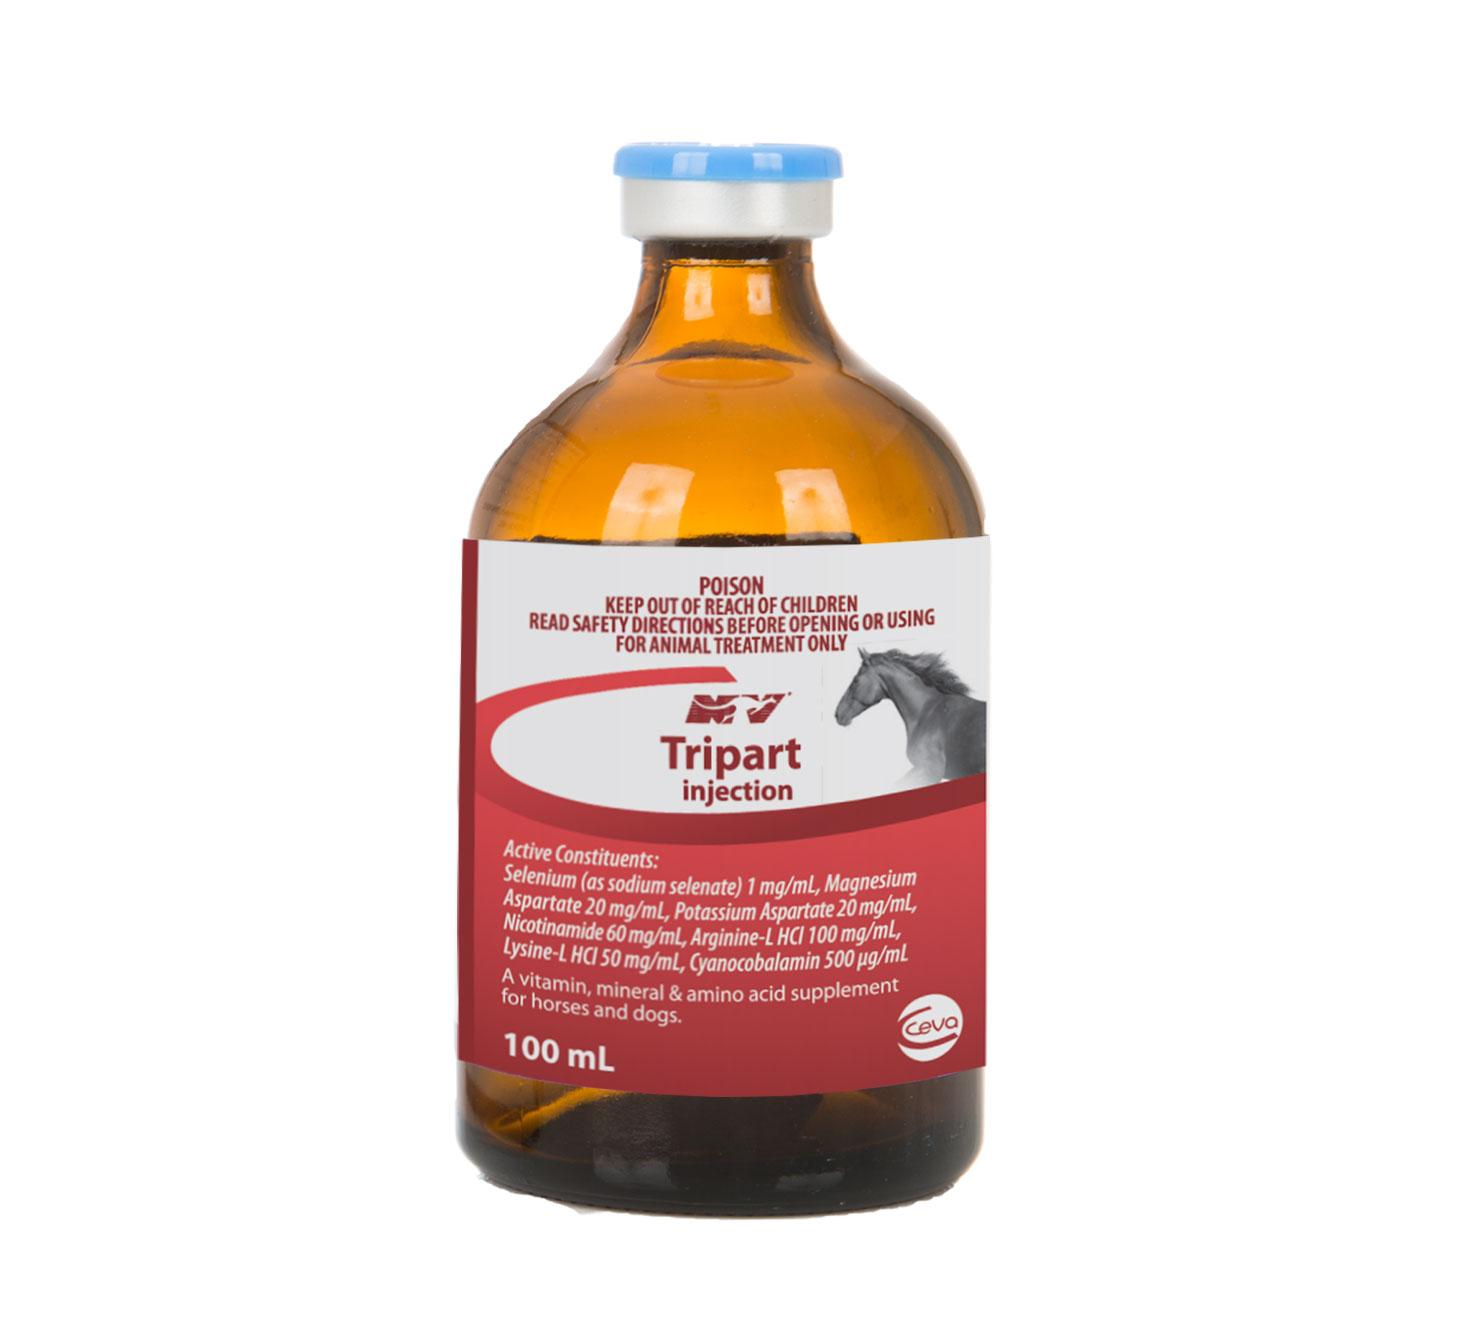 Tripart Injection 100ml Ceva Horse Supplies Equine